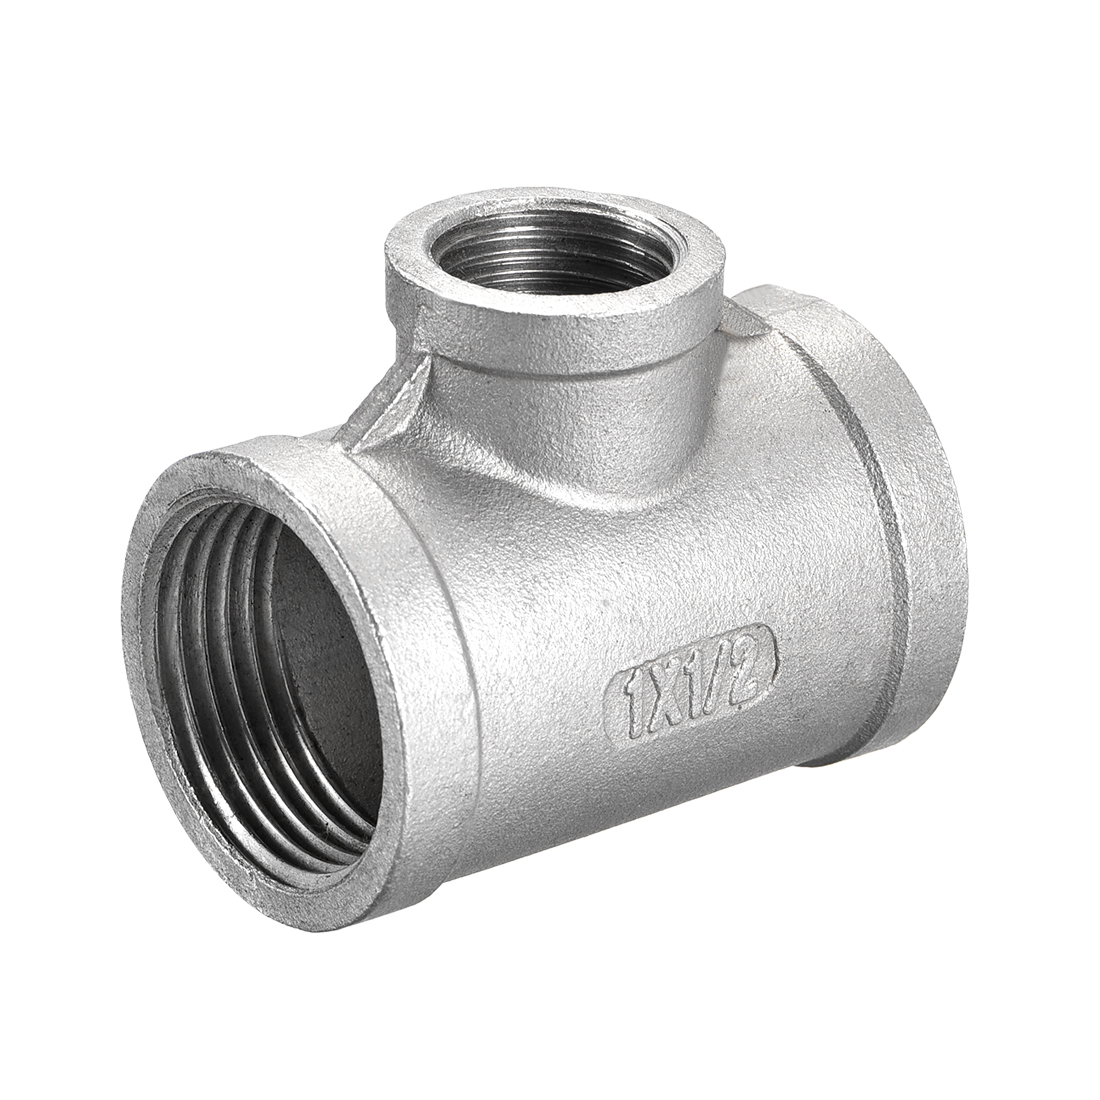 Stainless Steel 304 Cast Pipe Fitting 1 BSPT x 1/2 BSPT Tee Shaped Connector